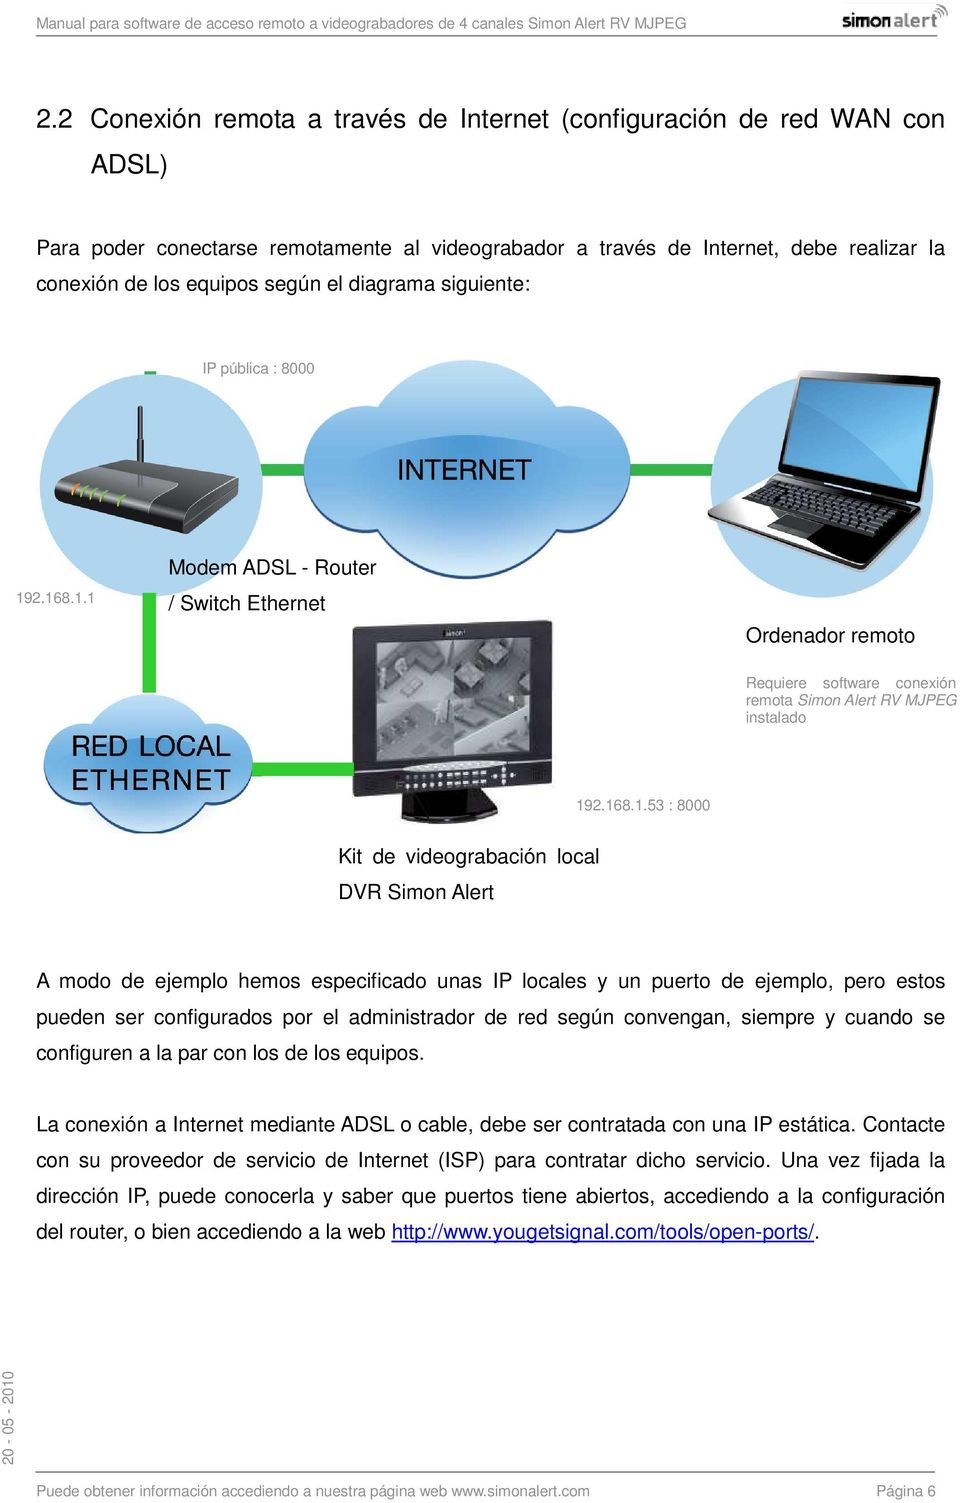 2.168.1.1 Modem ADSL - Router / Switch Ethernet Ordenador remoto Requiere software conexión remota Simon Alert RV MJPEG instalado 192.168.1.53 : 8000 Kit de videograbación local DVR Simon Alert A